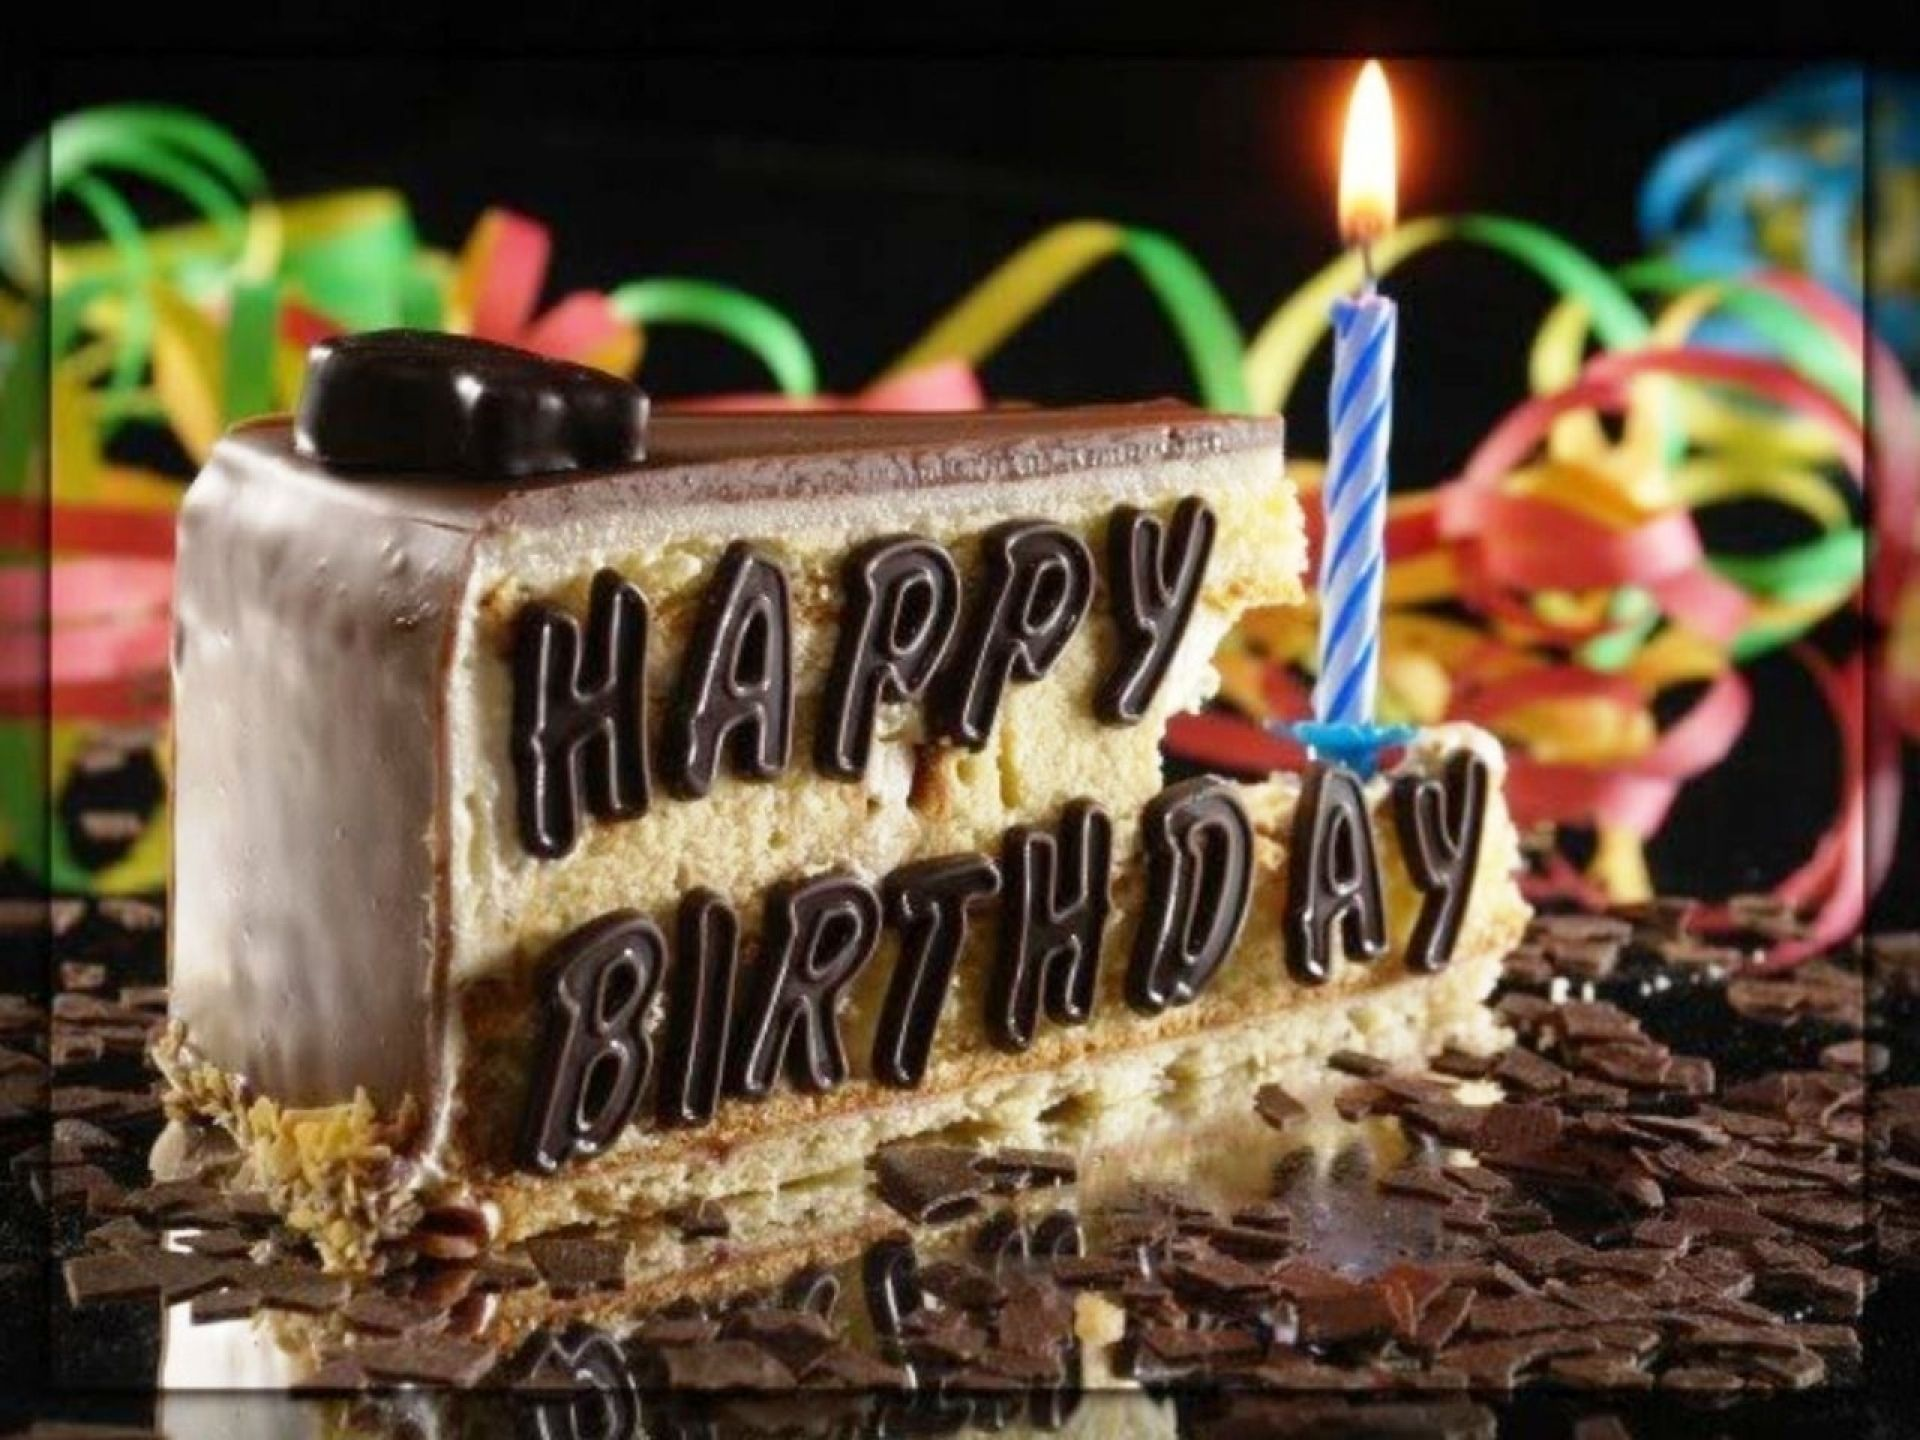 Happy birthday cake images hd free download wallpapers hd for mobile happy birthday cake images hd free download wallpapers hd for mobile free download m4hsunfo